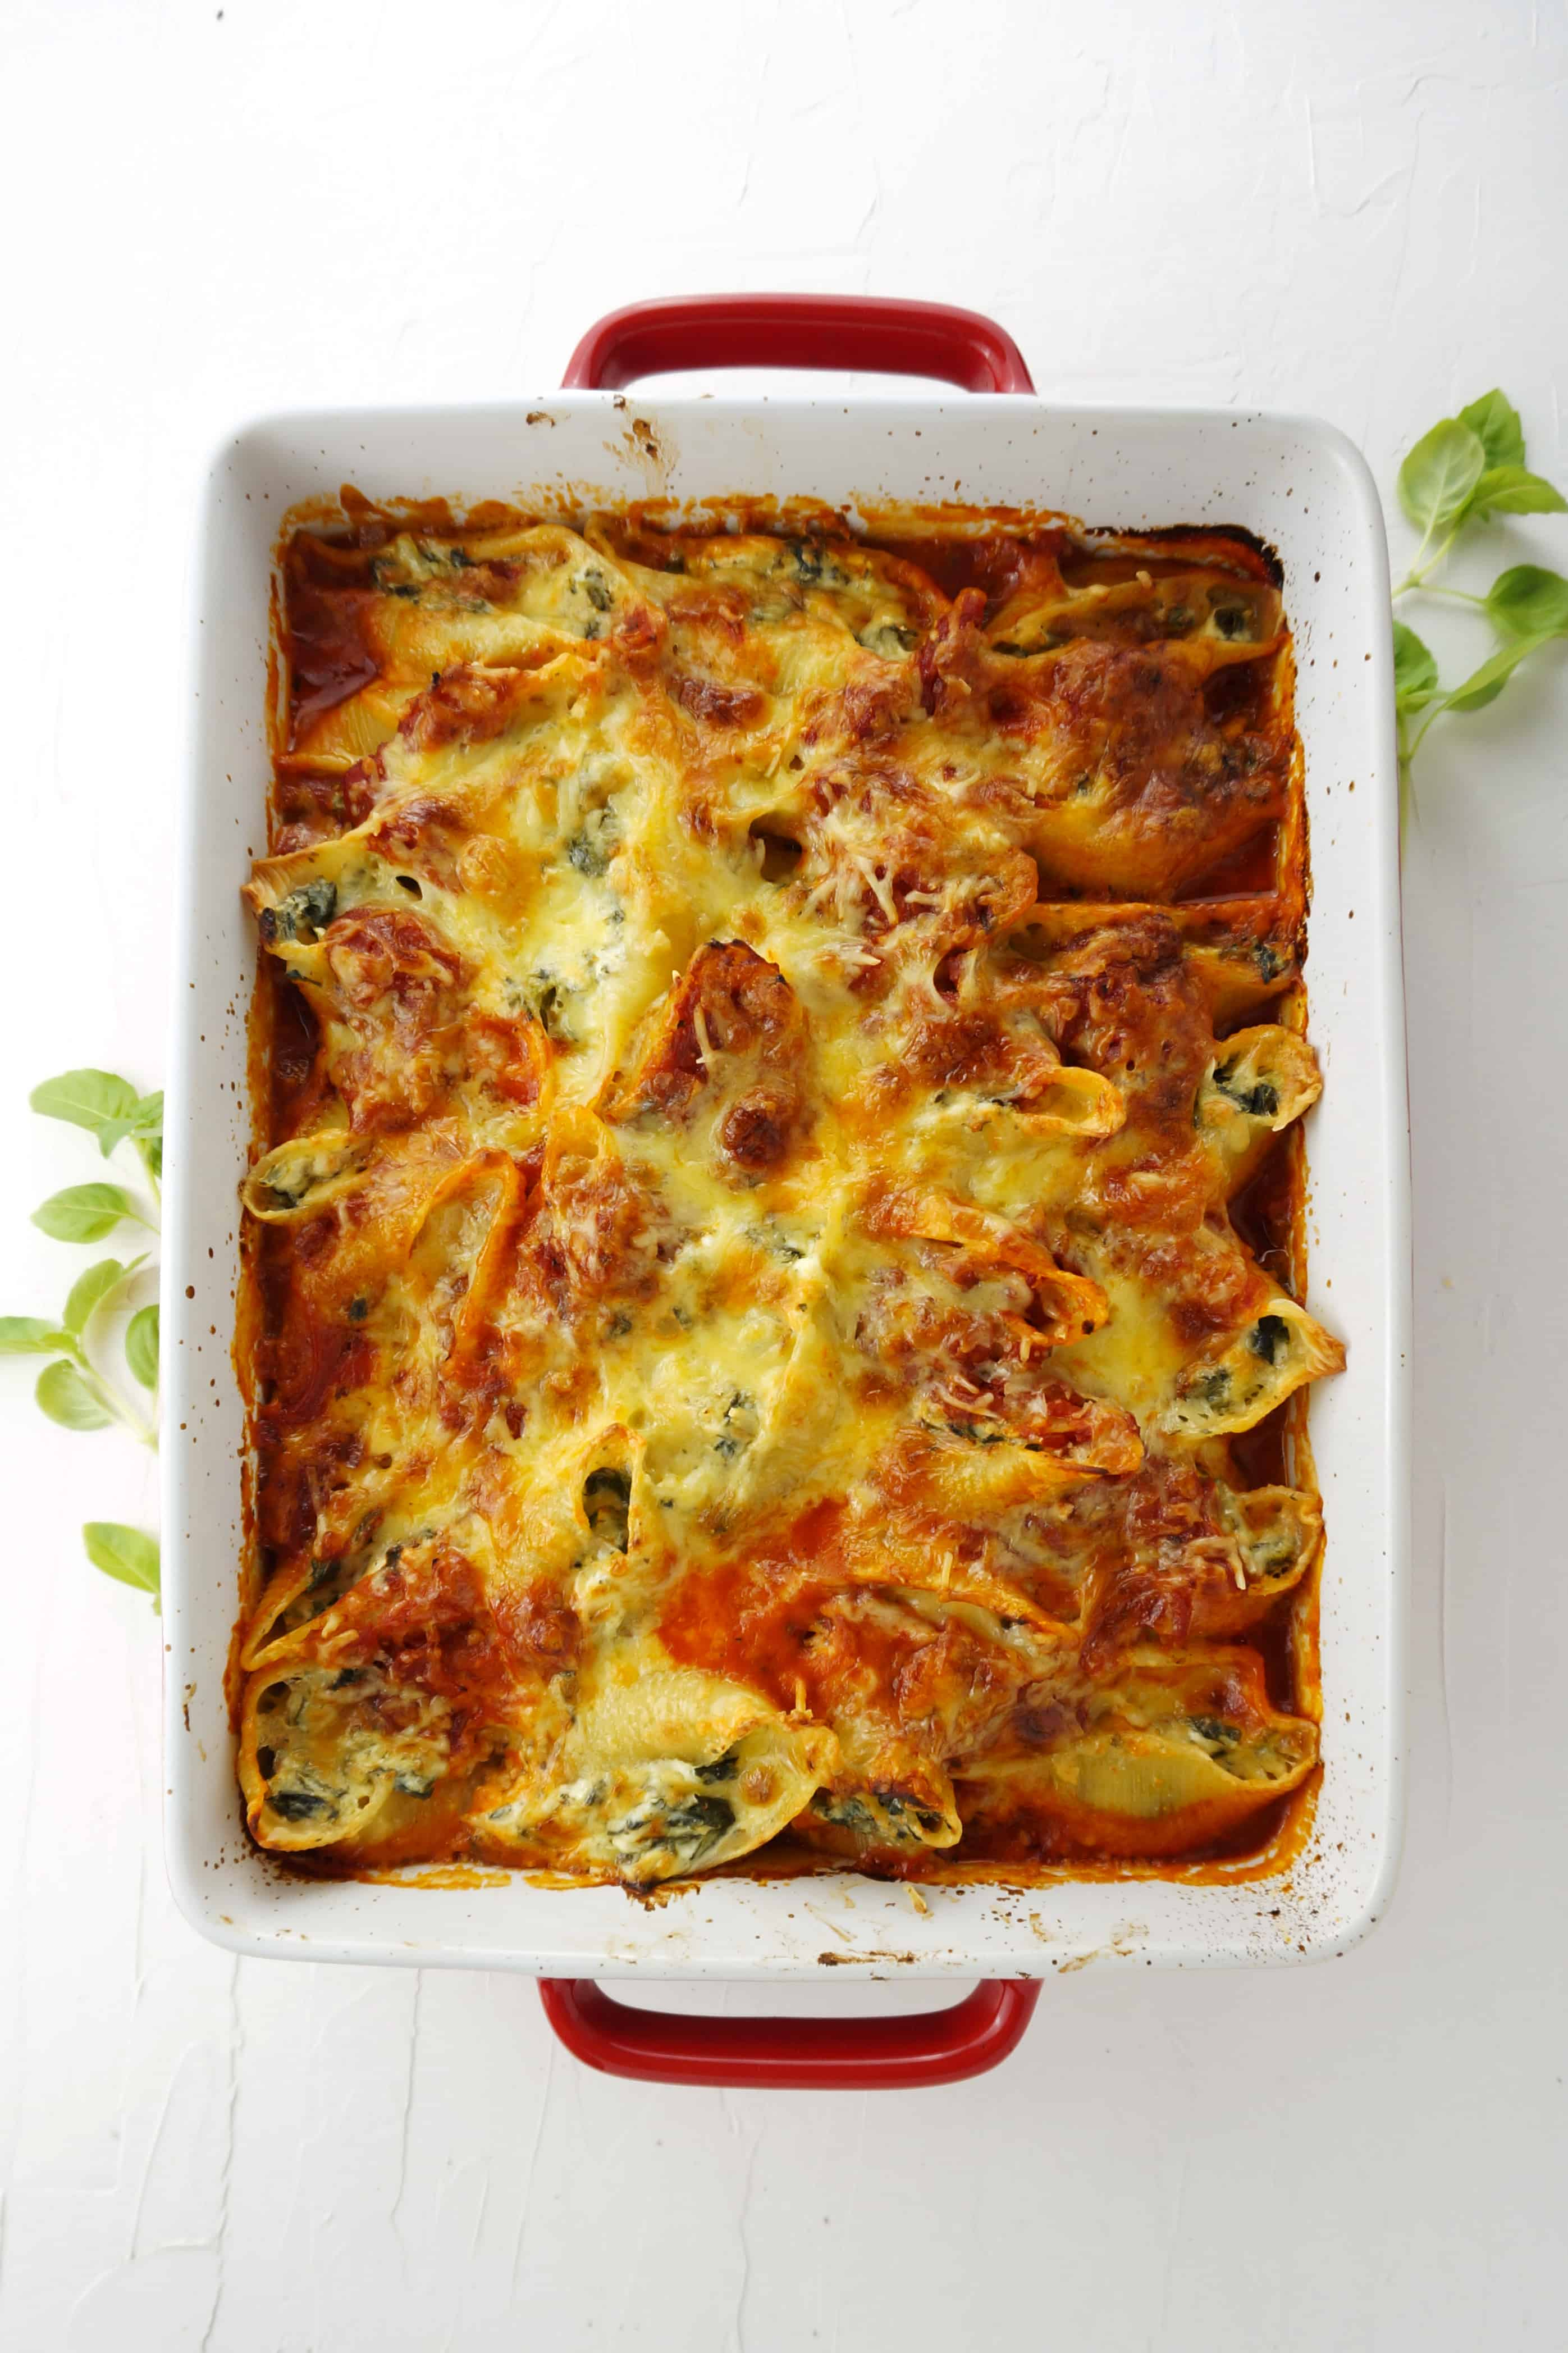 Spinach and Cheese Stuffed Conchiglioni Pasta Bake in baking dish surrounded by fresh basil leaves